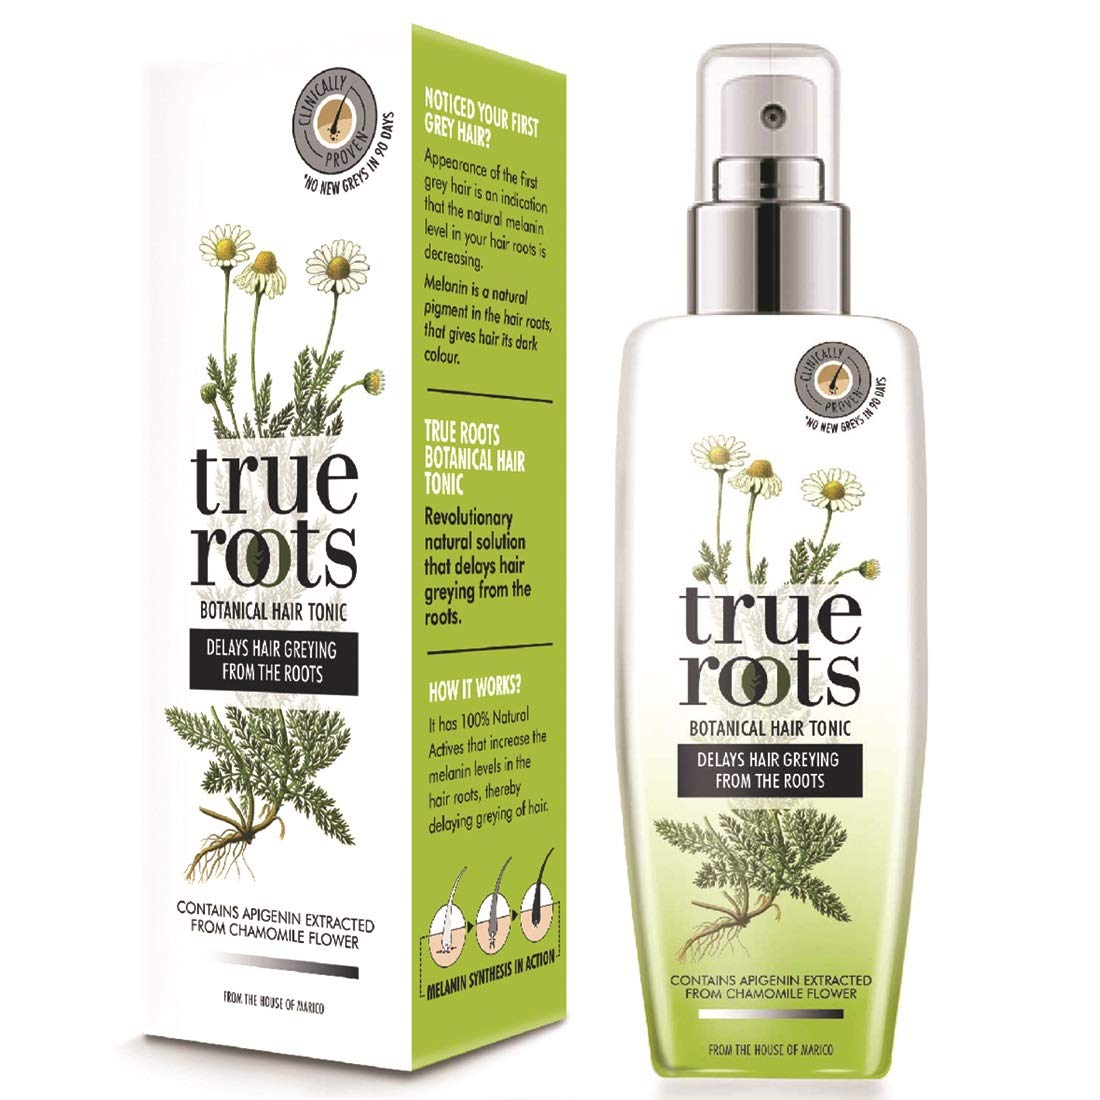 Buy True Roots Botanical Hair Tonic To Delay Hair Greying 75 Ml Online At Low Prices In India Amazon In